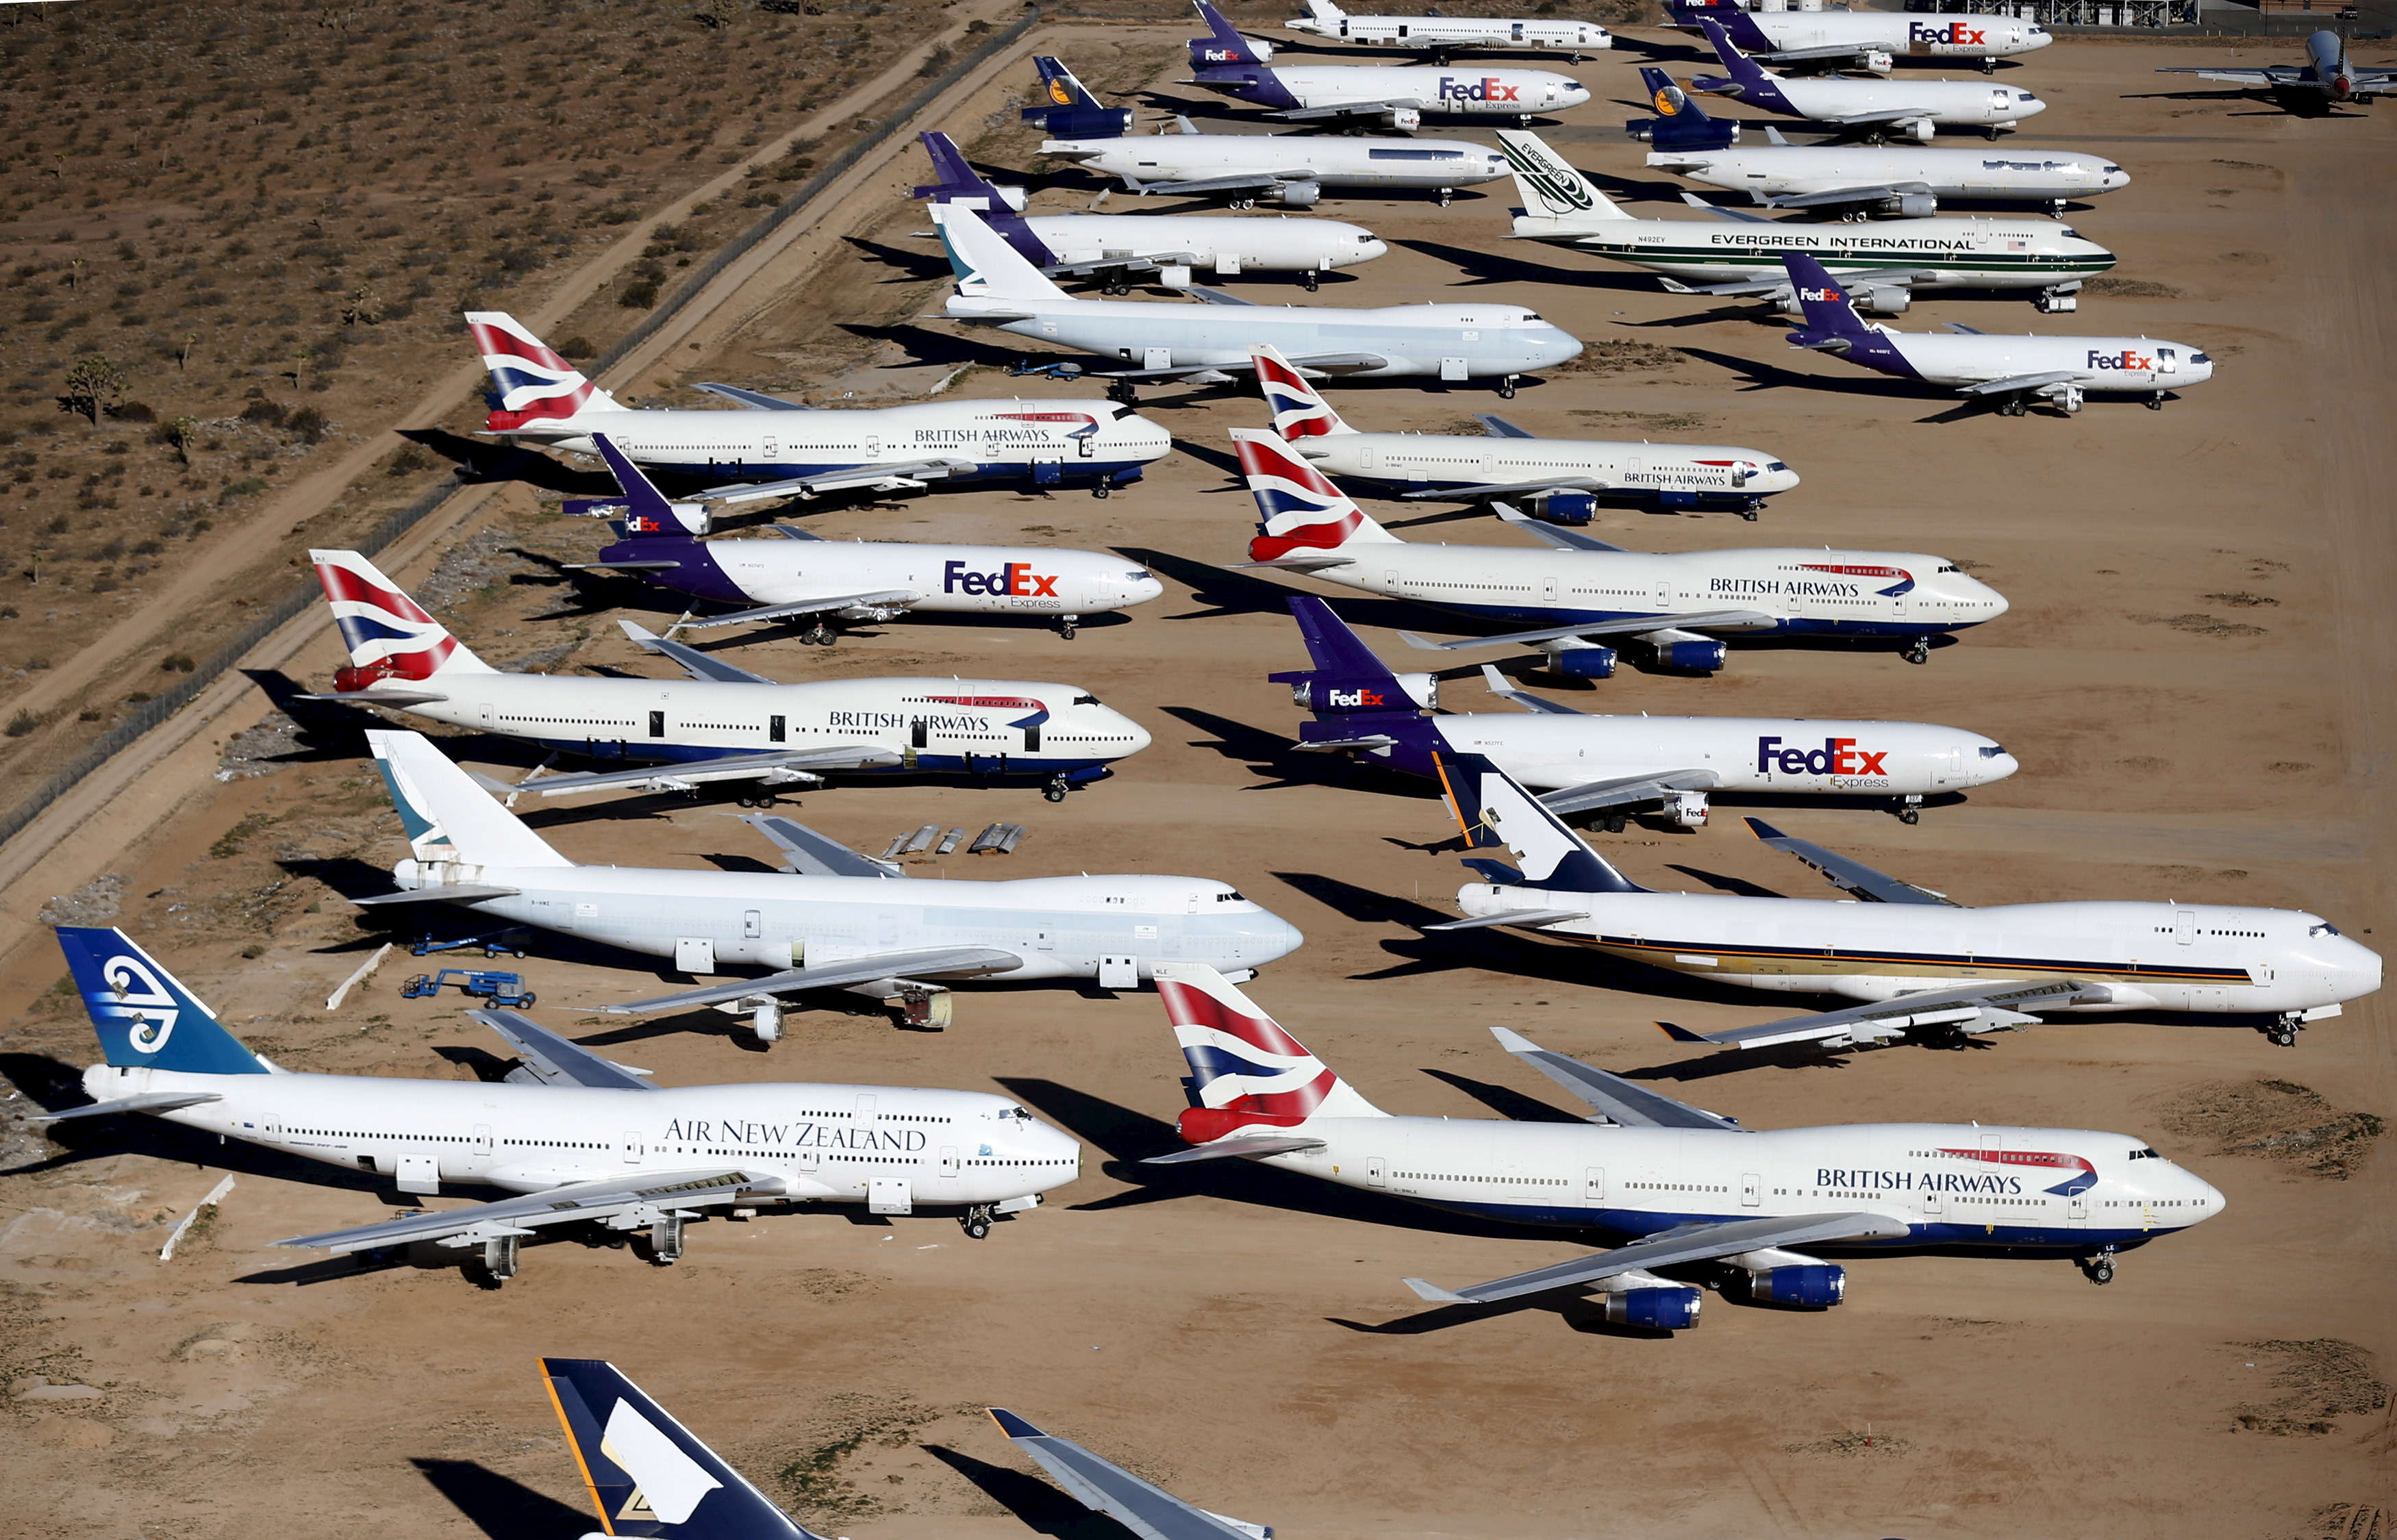 Southern California S Logistics Airport Official Boneyard For Yester Years Jumbo Jets